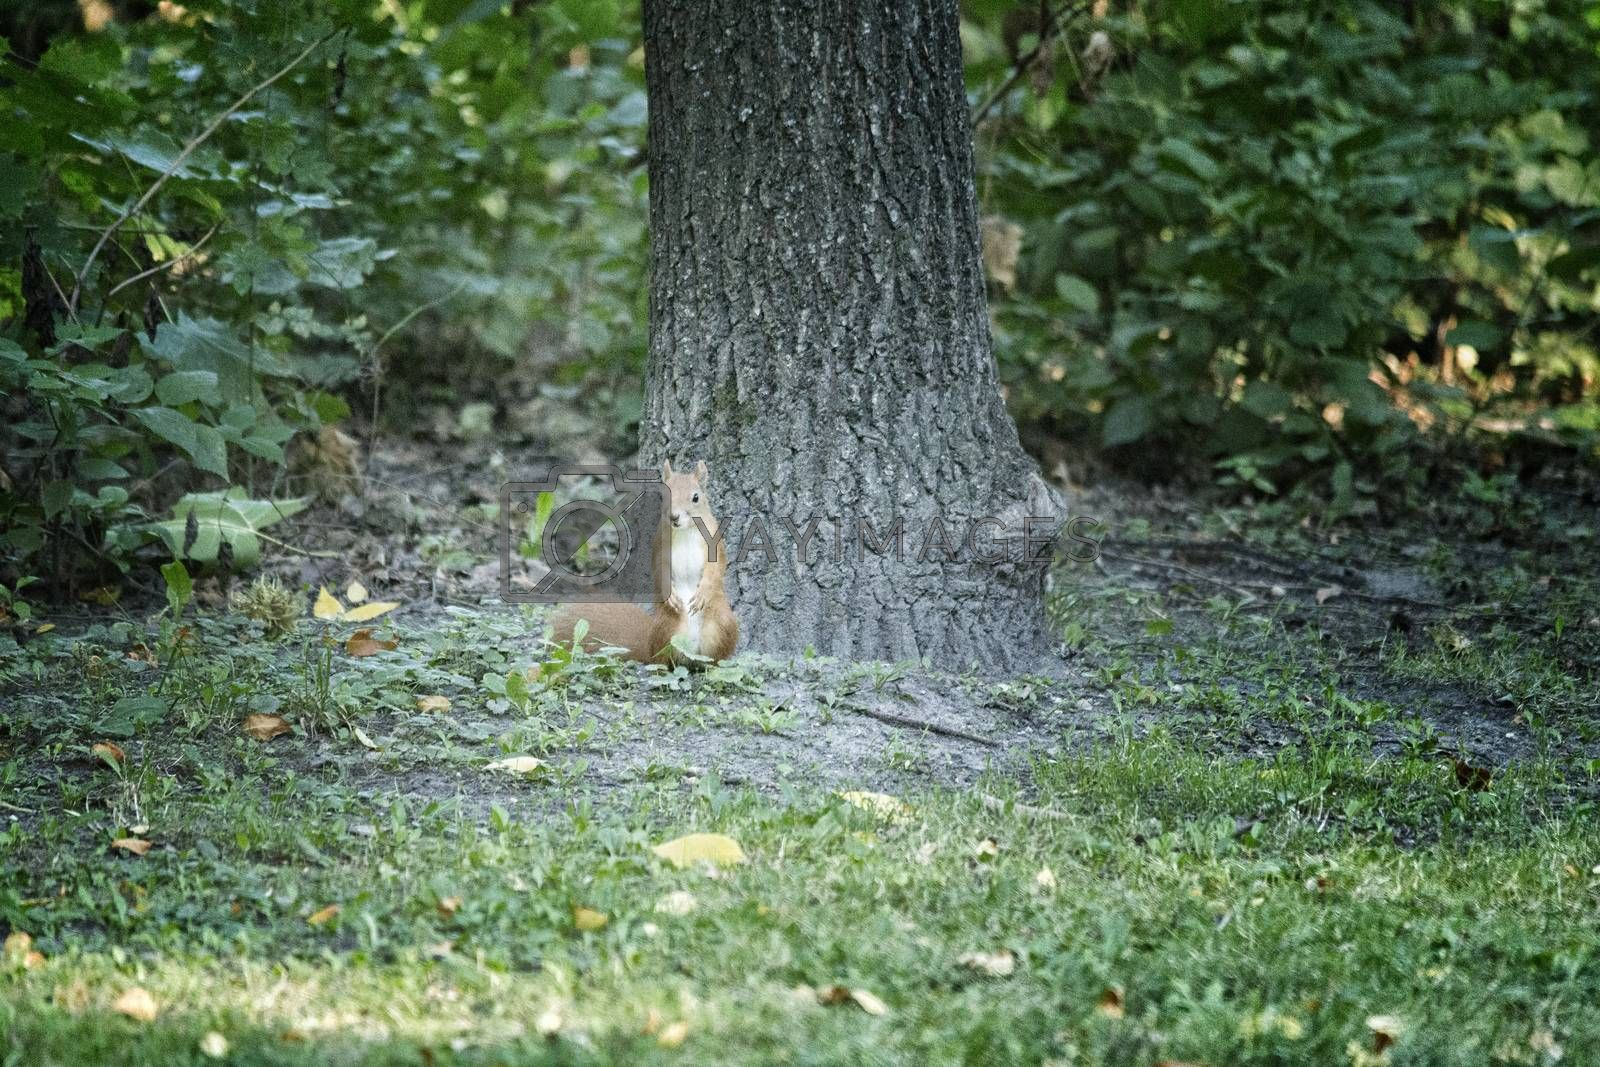 Red brownish squirren on grass near tree